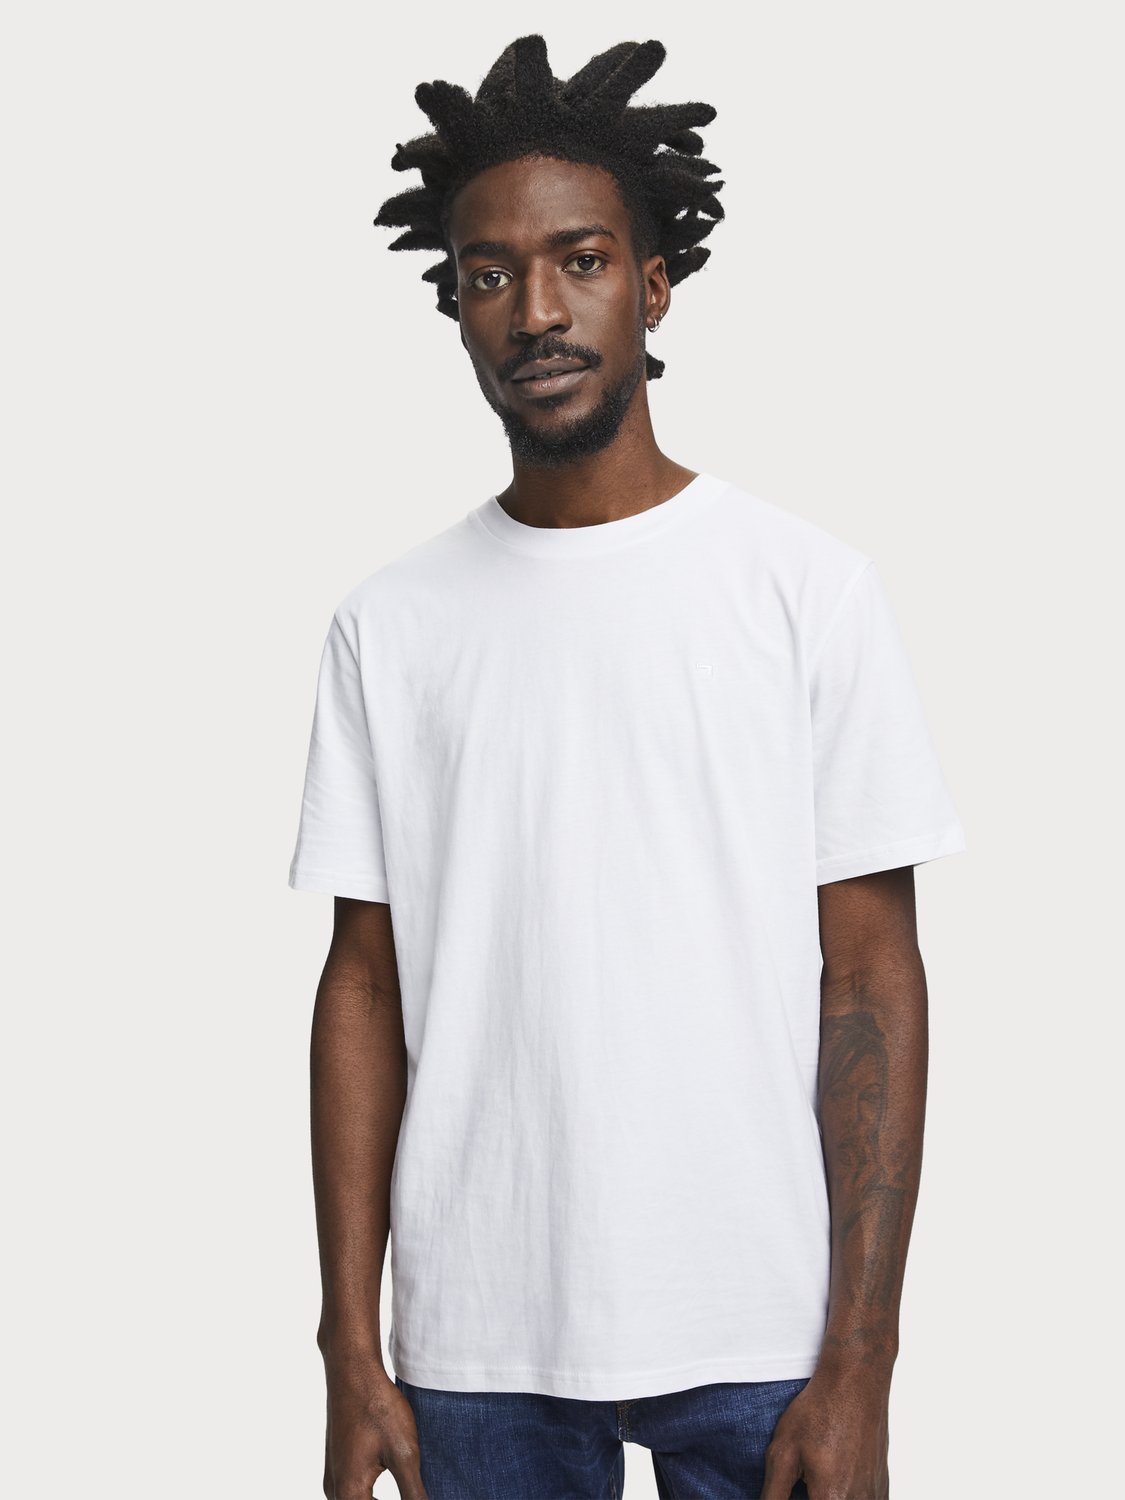 quality white t shirts